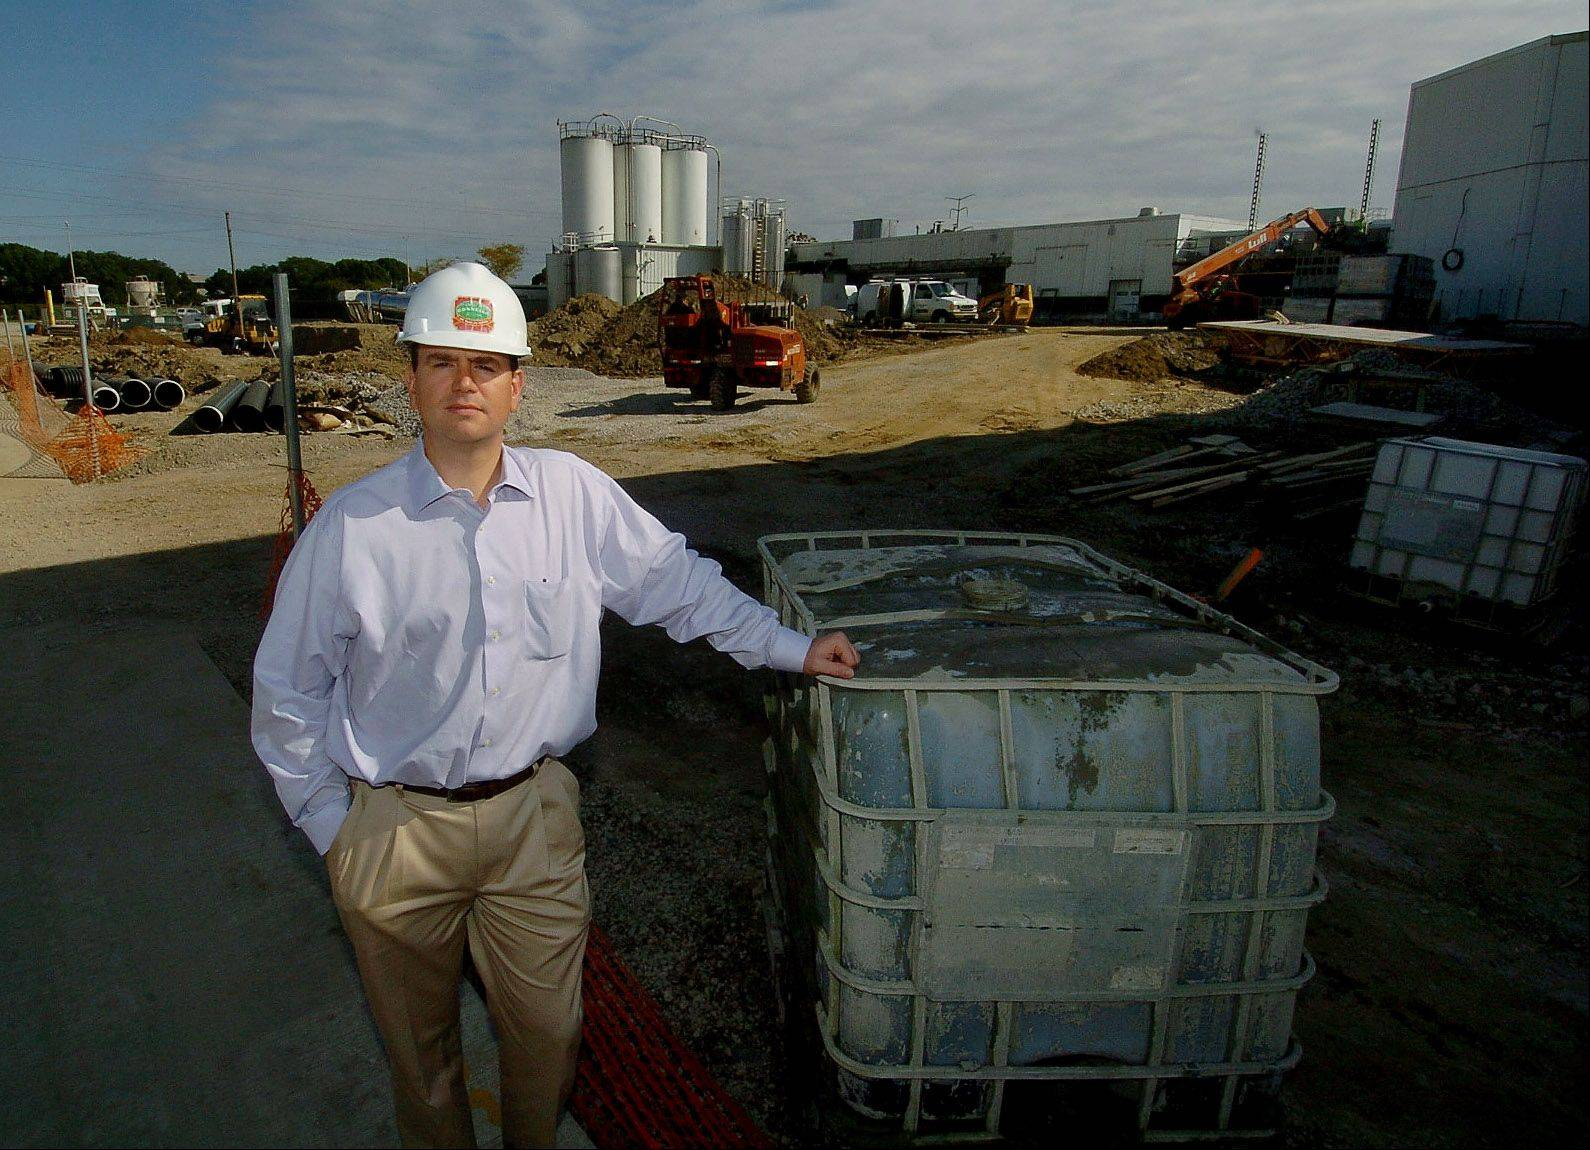 Kent Beernink standing alongside expansion of Gonnella in Schaumburg.